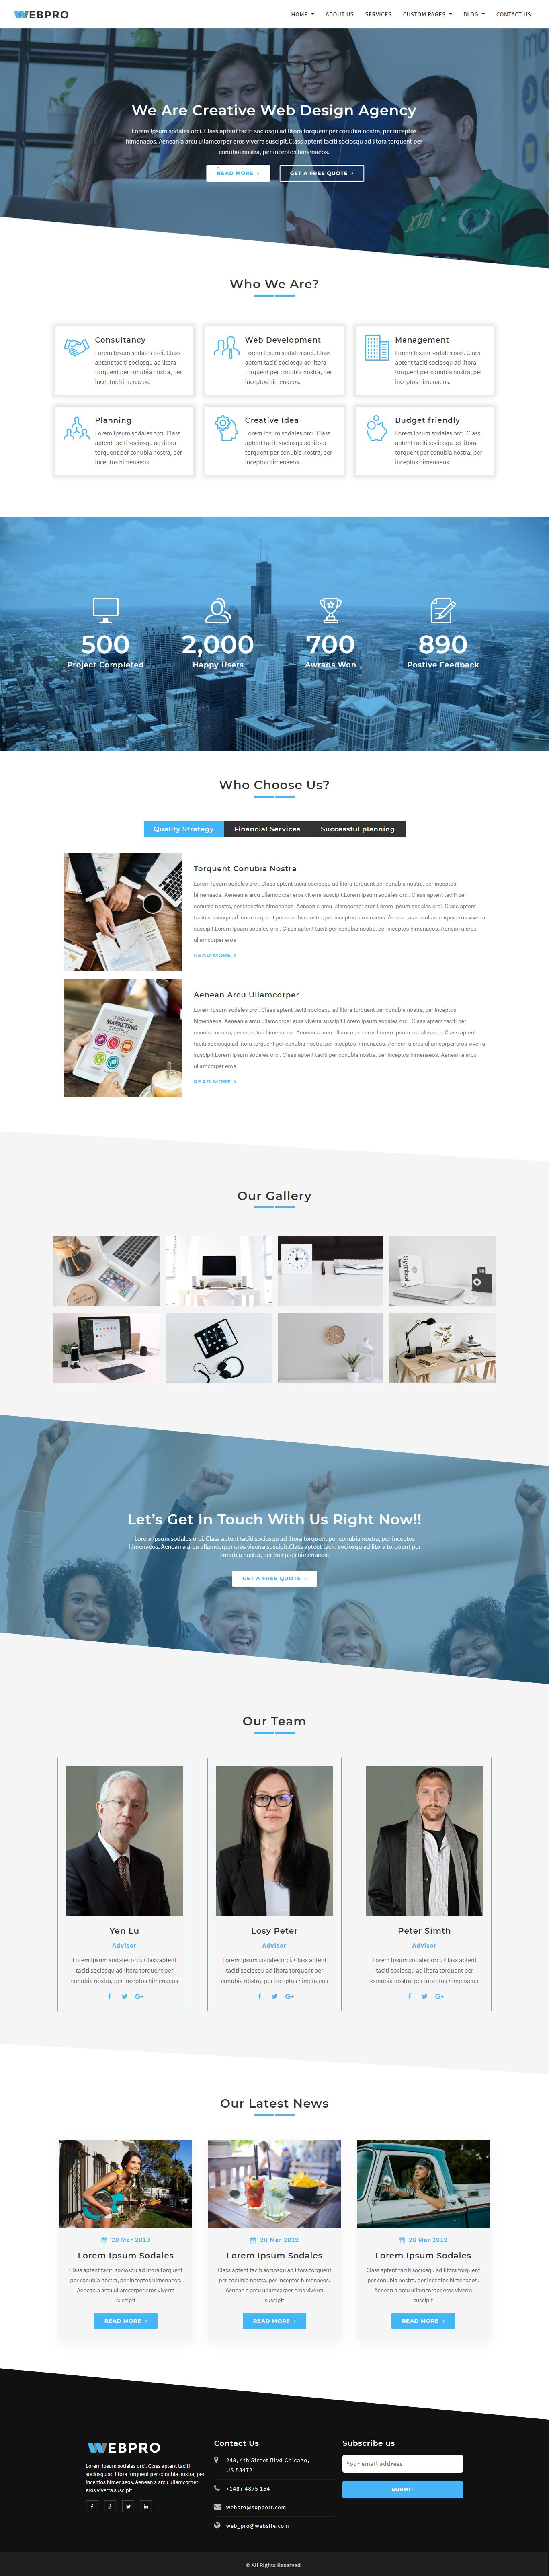 WebPro - Corporate WordPress Theme using Elementor Screenshot 1